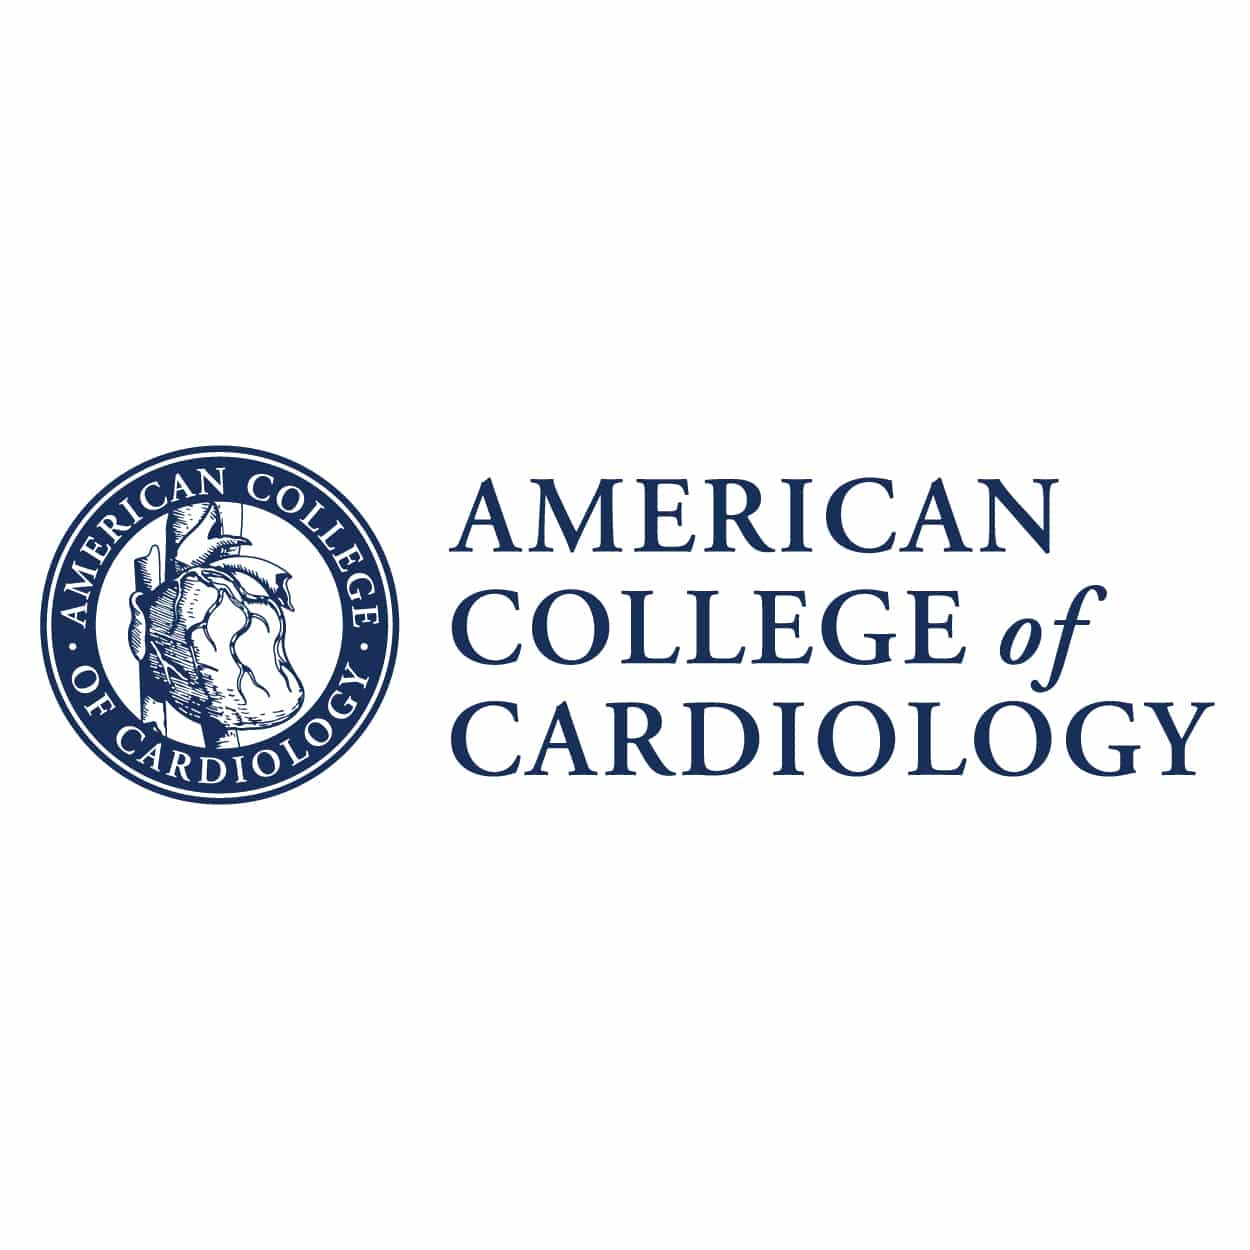 Innovation Partnership with American College of Cardiology